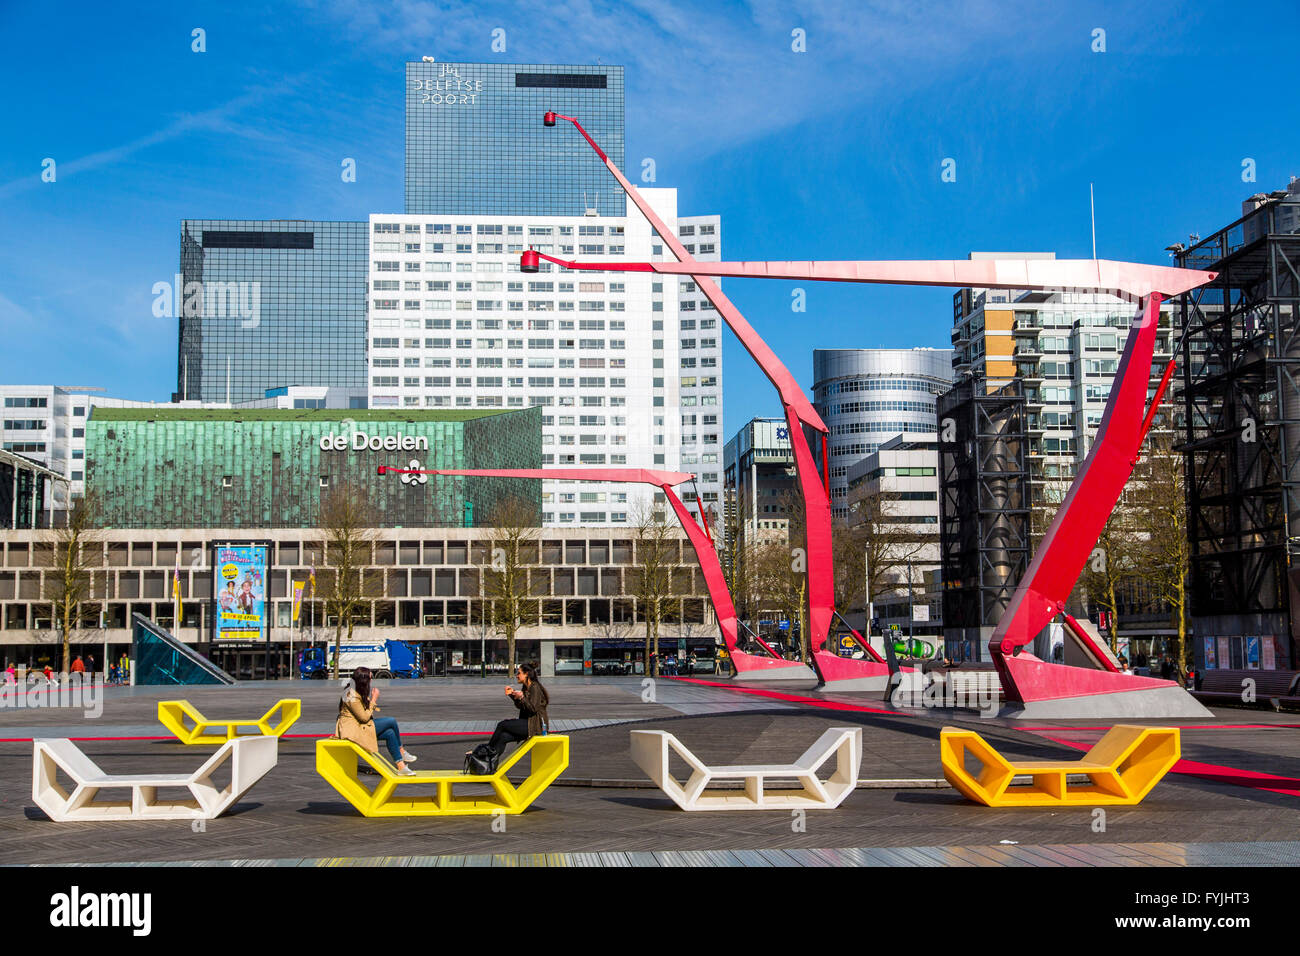 Downtown, Schouwburgplein, square in the city center, with various cultural institutions and art installations, - Stock Image